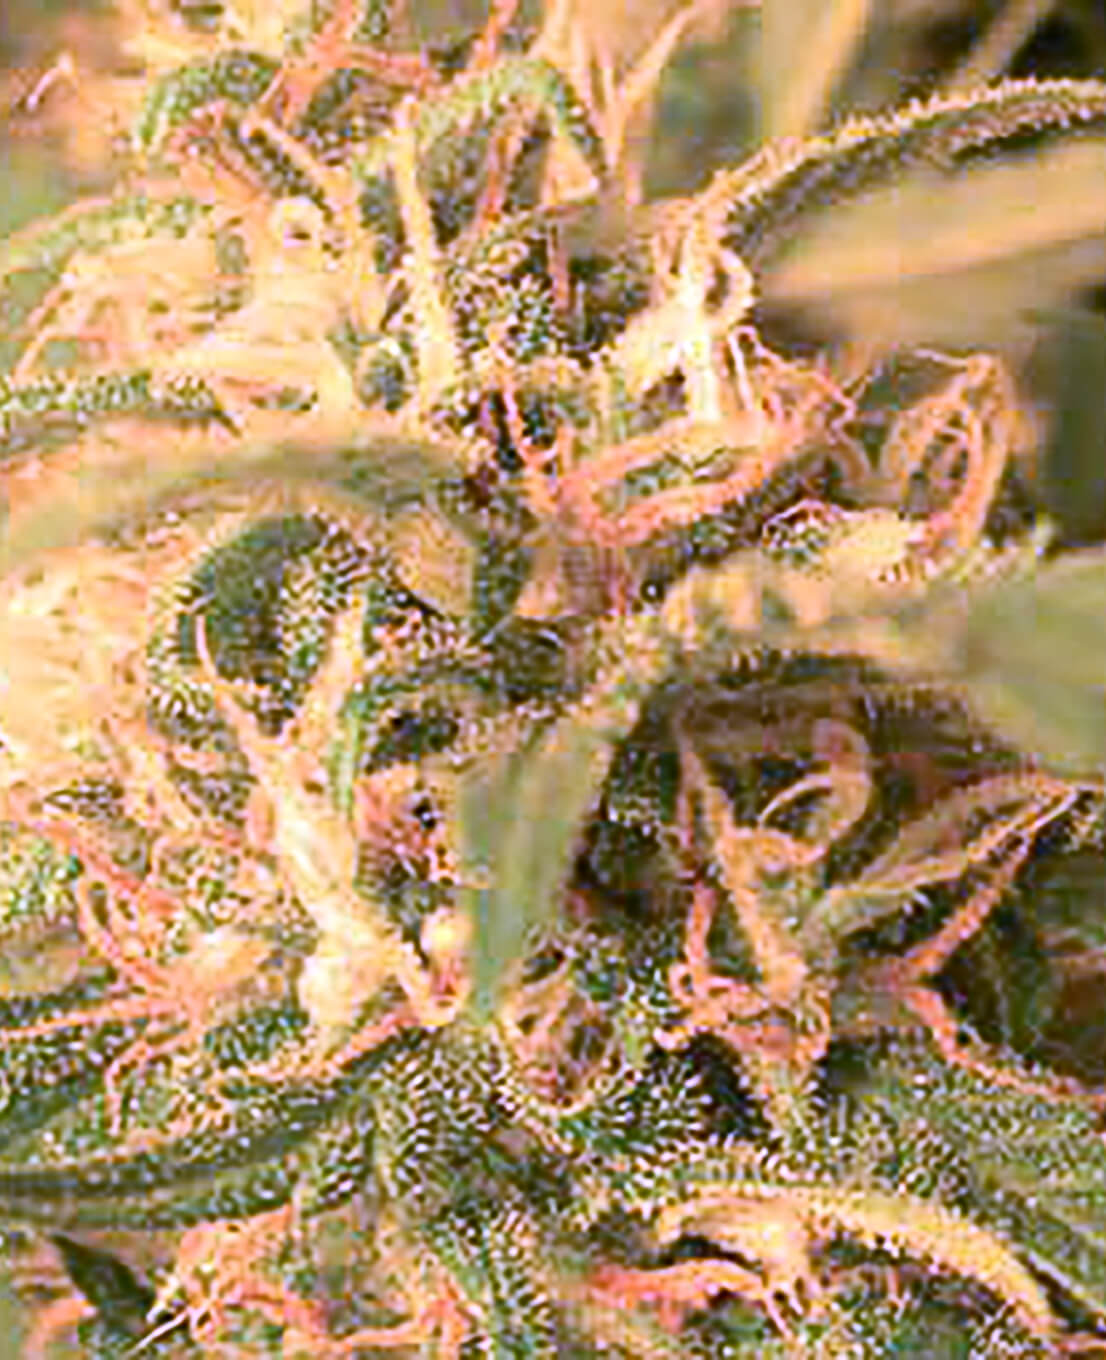 Northern Lights Feminisiert Samen - Weed Seed Shop